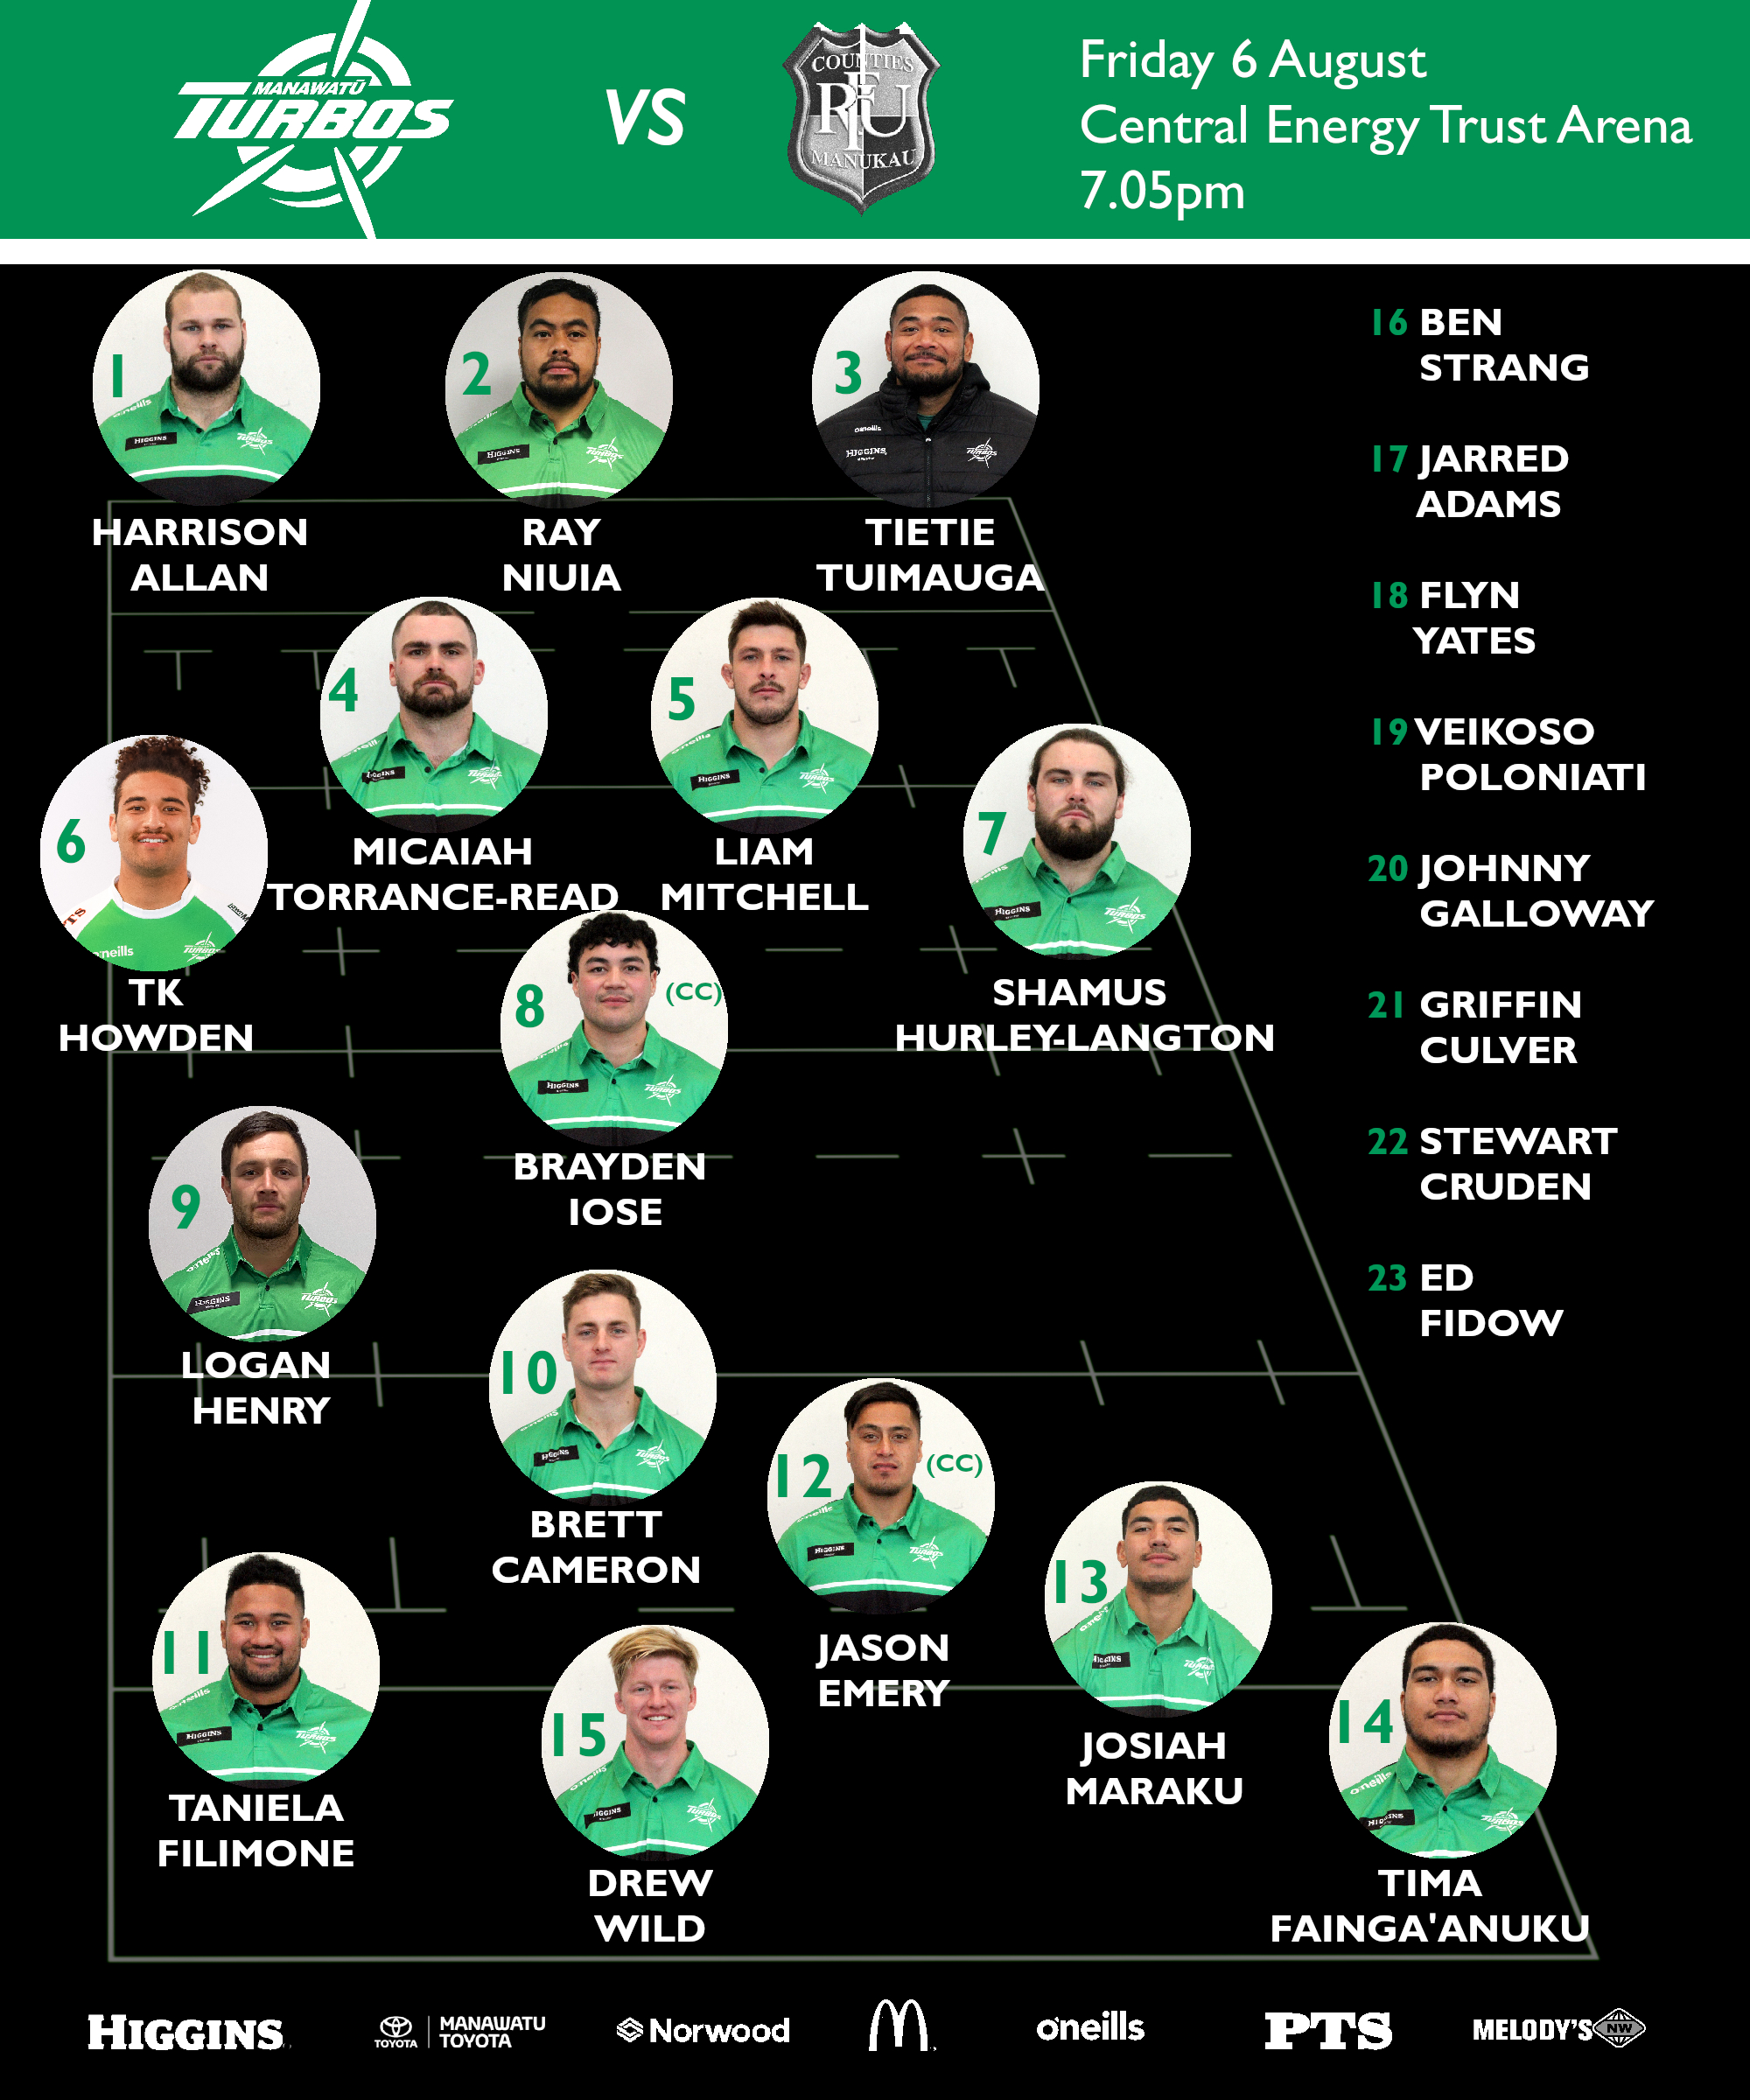 FRESH FACES FOR FIRST FIXTURE